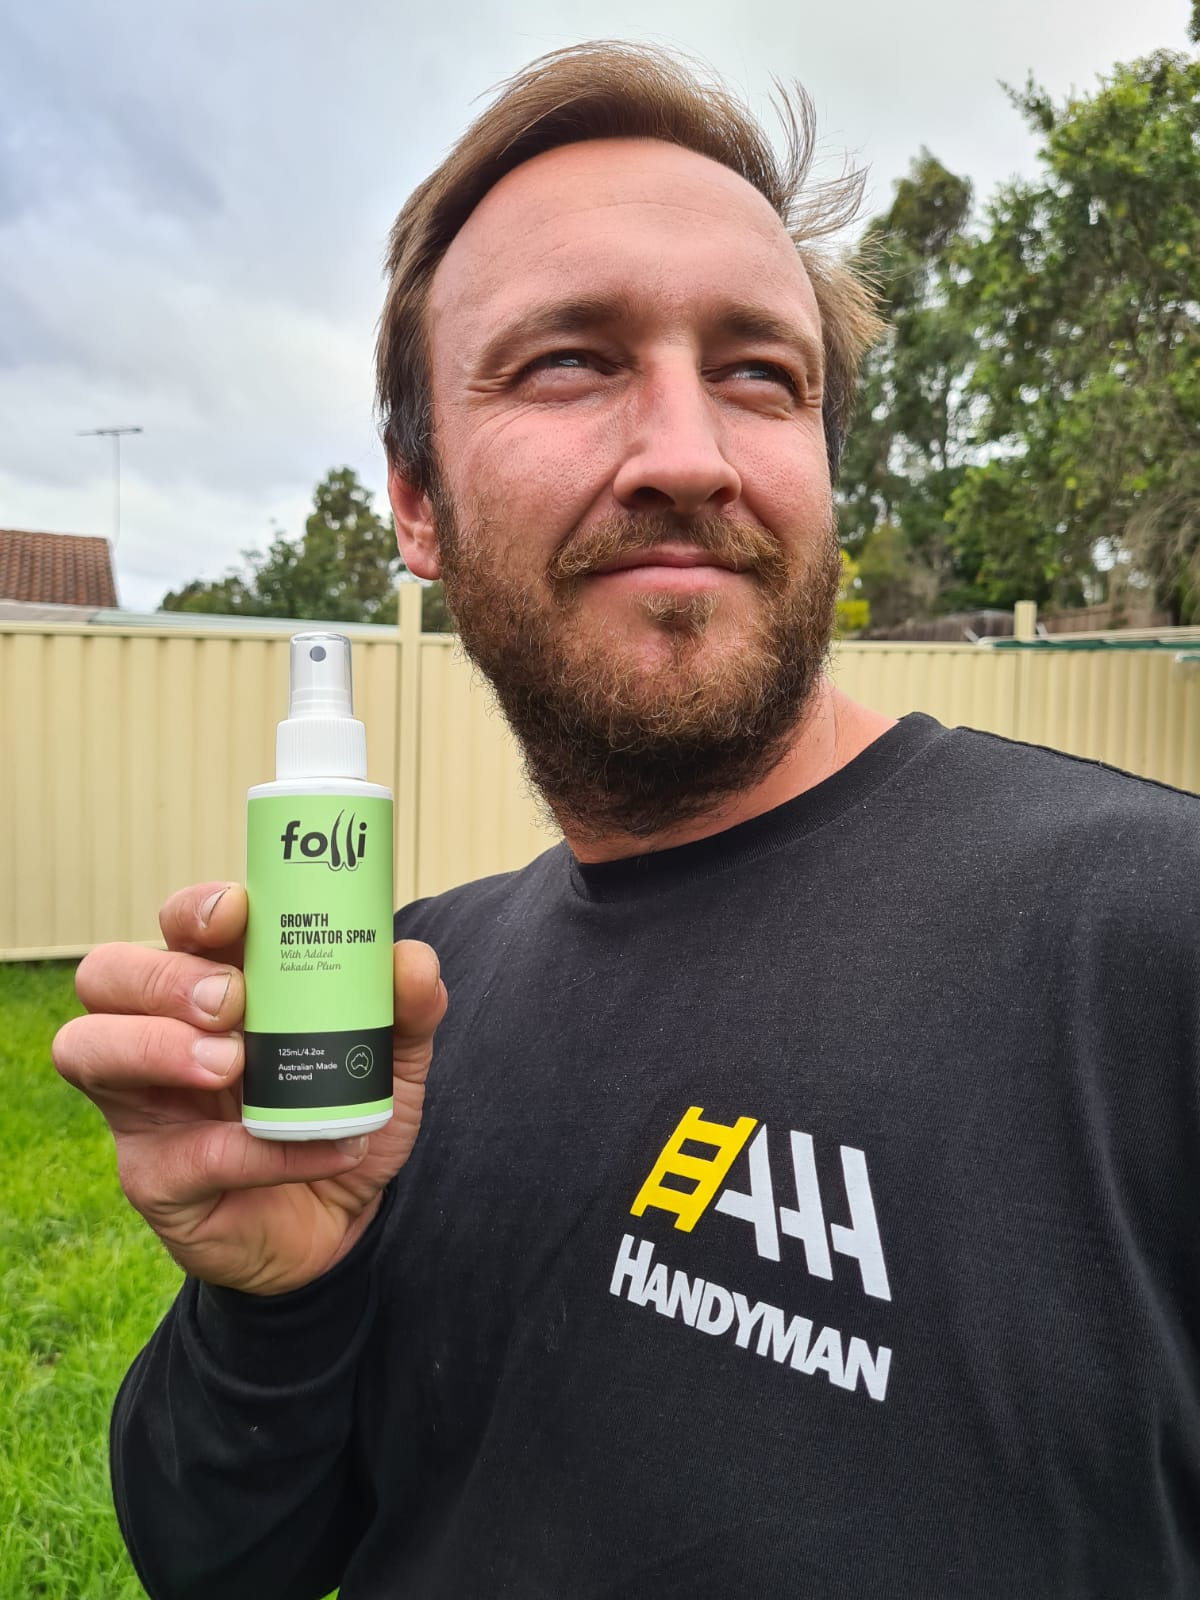 Hair Folli Spray